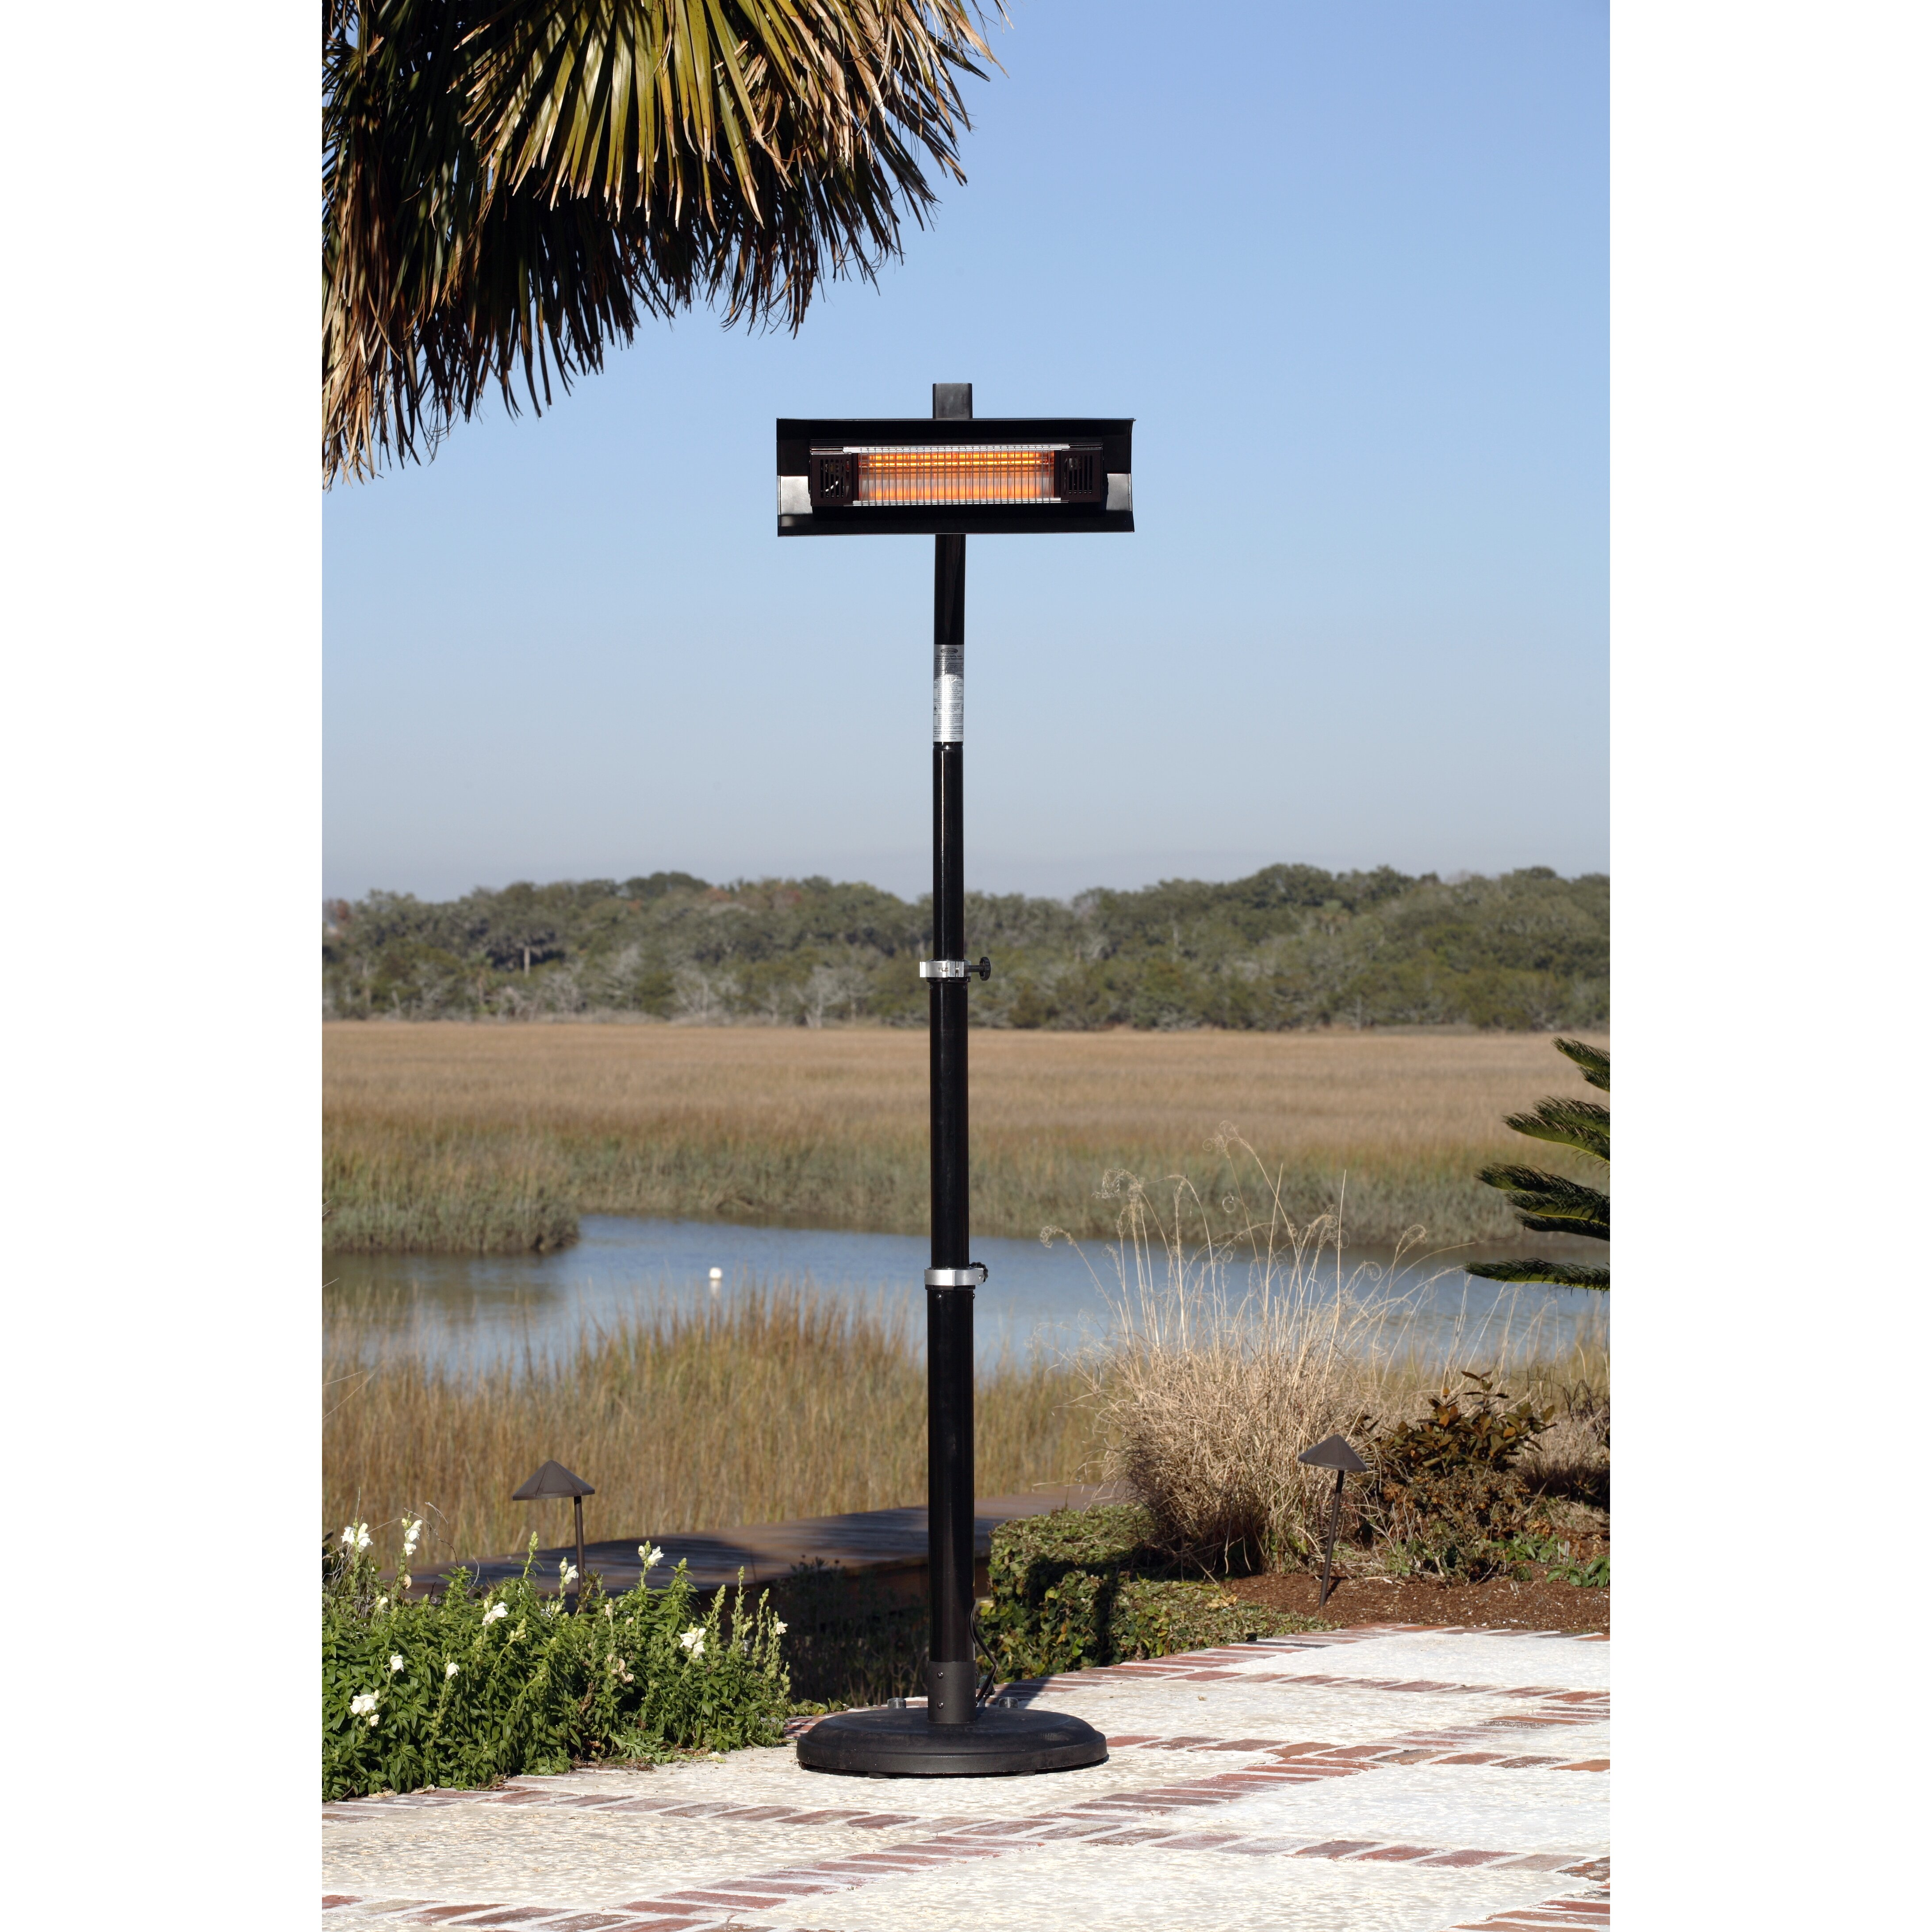 Fire Sense Telescoping 1500 Watt Electric Patio Heater Reviews – Fire Sense Patio Heater